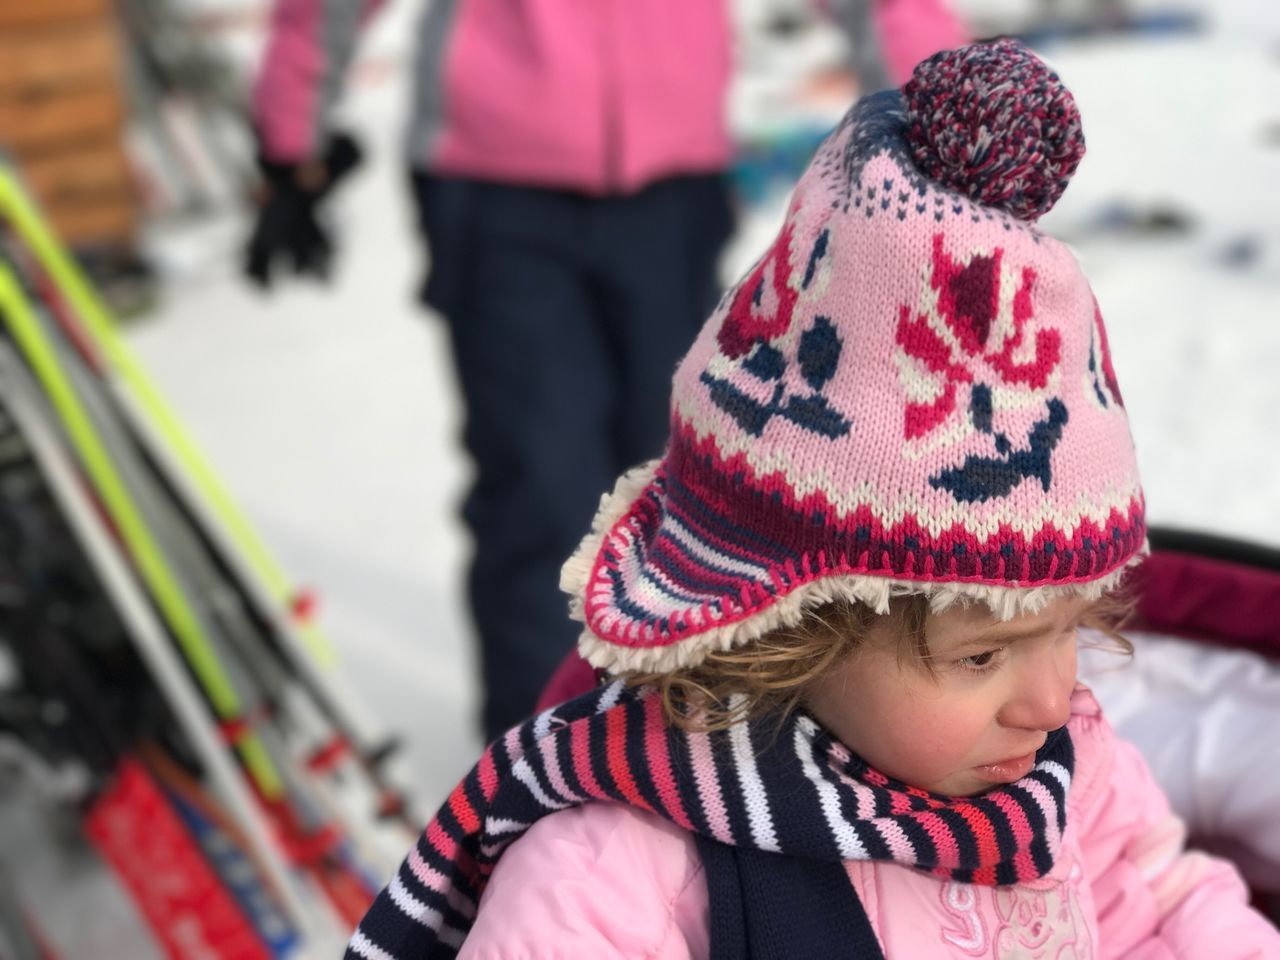 Toddler  Toddlerlife Winter Snow Knit Hat Real People Red Focus On Foreground One Person Warm Clothing Close-up Childhood Outdoors Day People